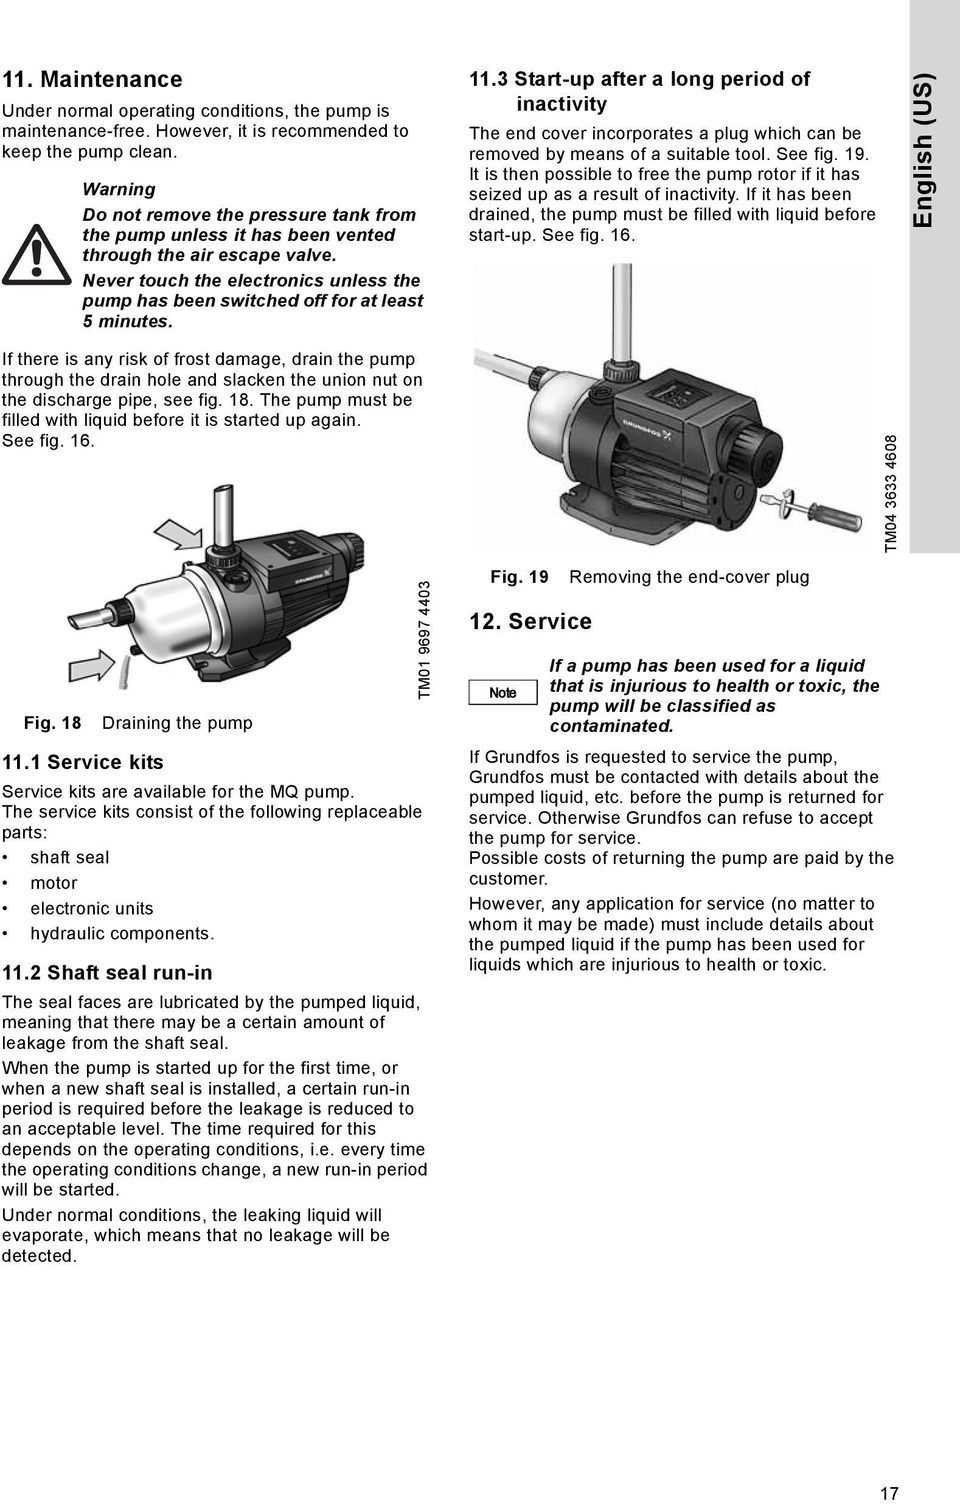 11.3 Start-up after a long period of inactivity The end cover incorporates a plug which can be removed by means of a suitable tool. See fig. 19.